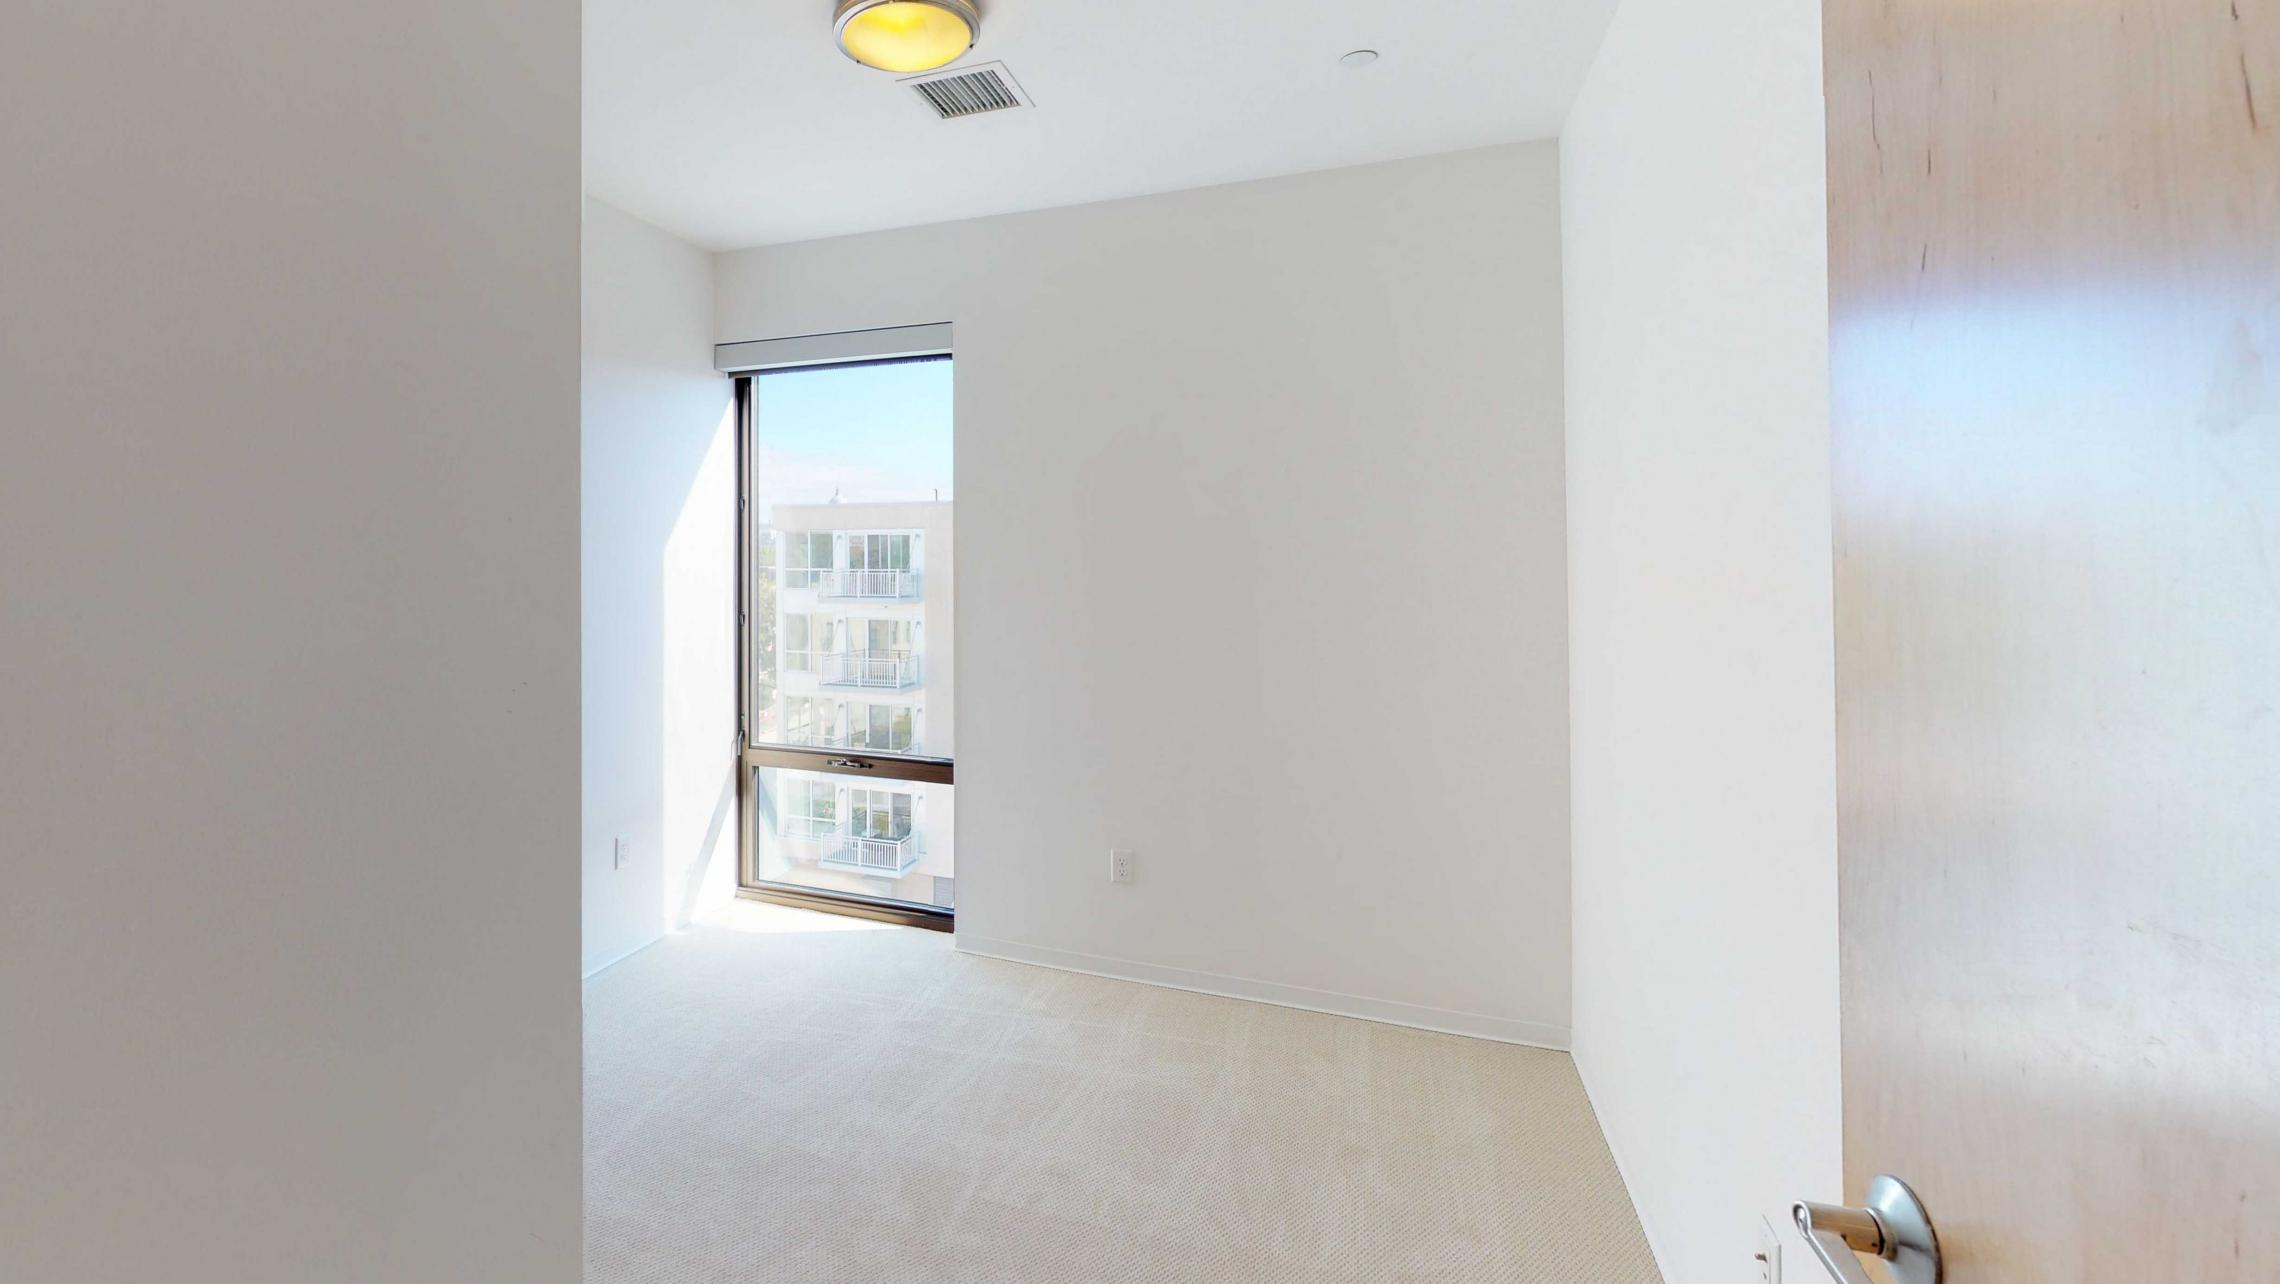 SEVEN27-Apartment-524-Two bedroom-Modern-Luxuy-Upscale-Capitol View-Lake View-Tp Floor-Balcony-Terrace-City View-GUest-Bedroom.jpg